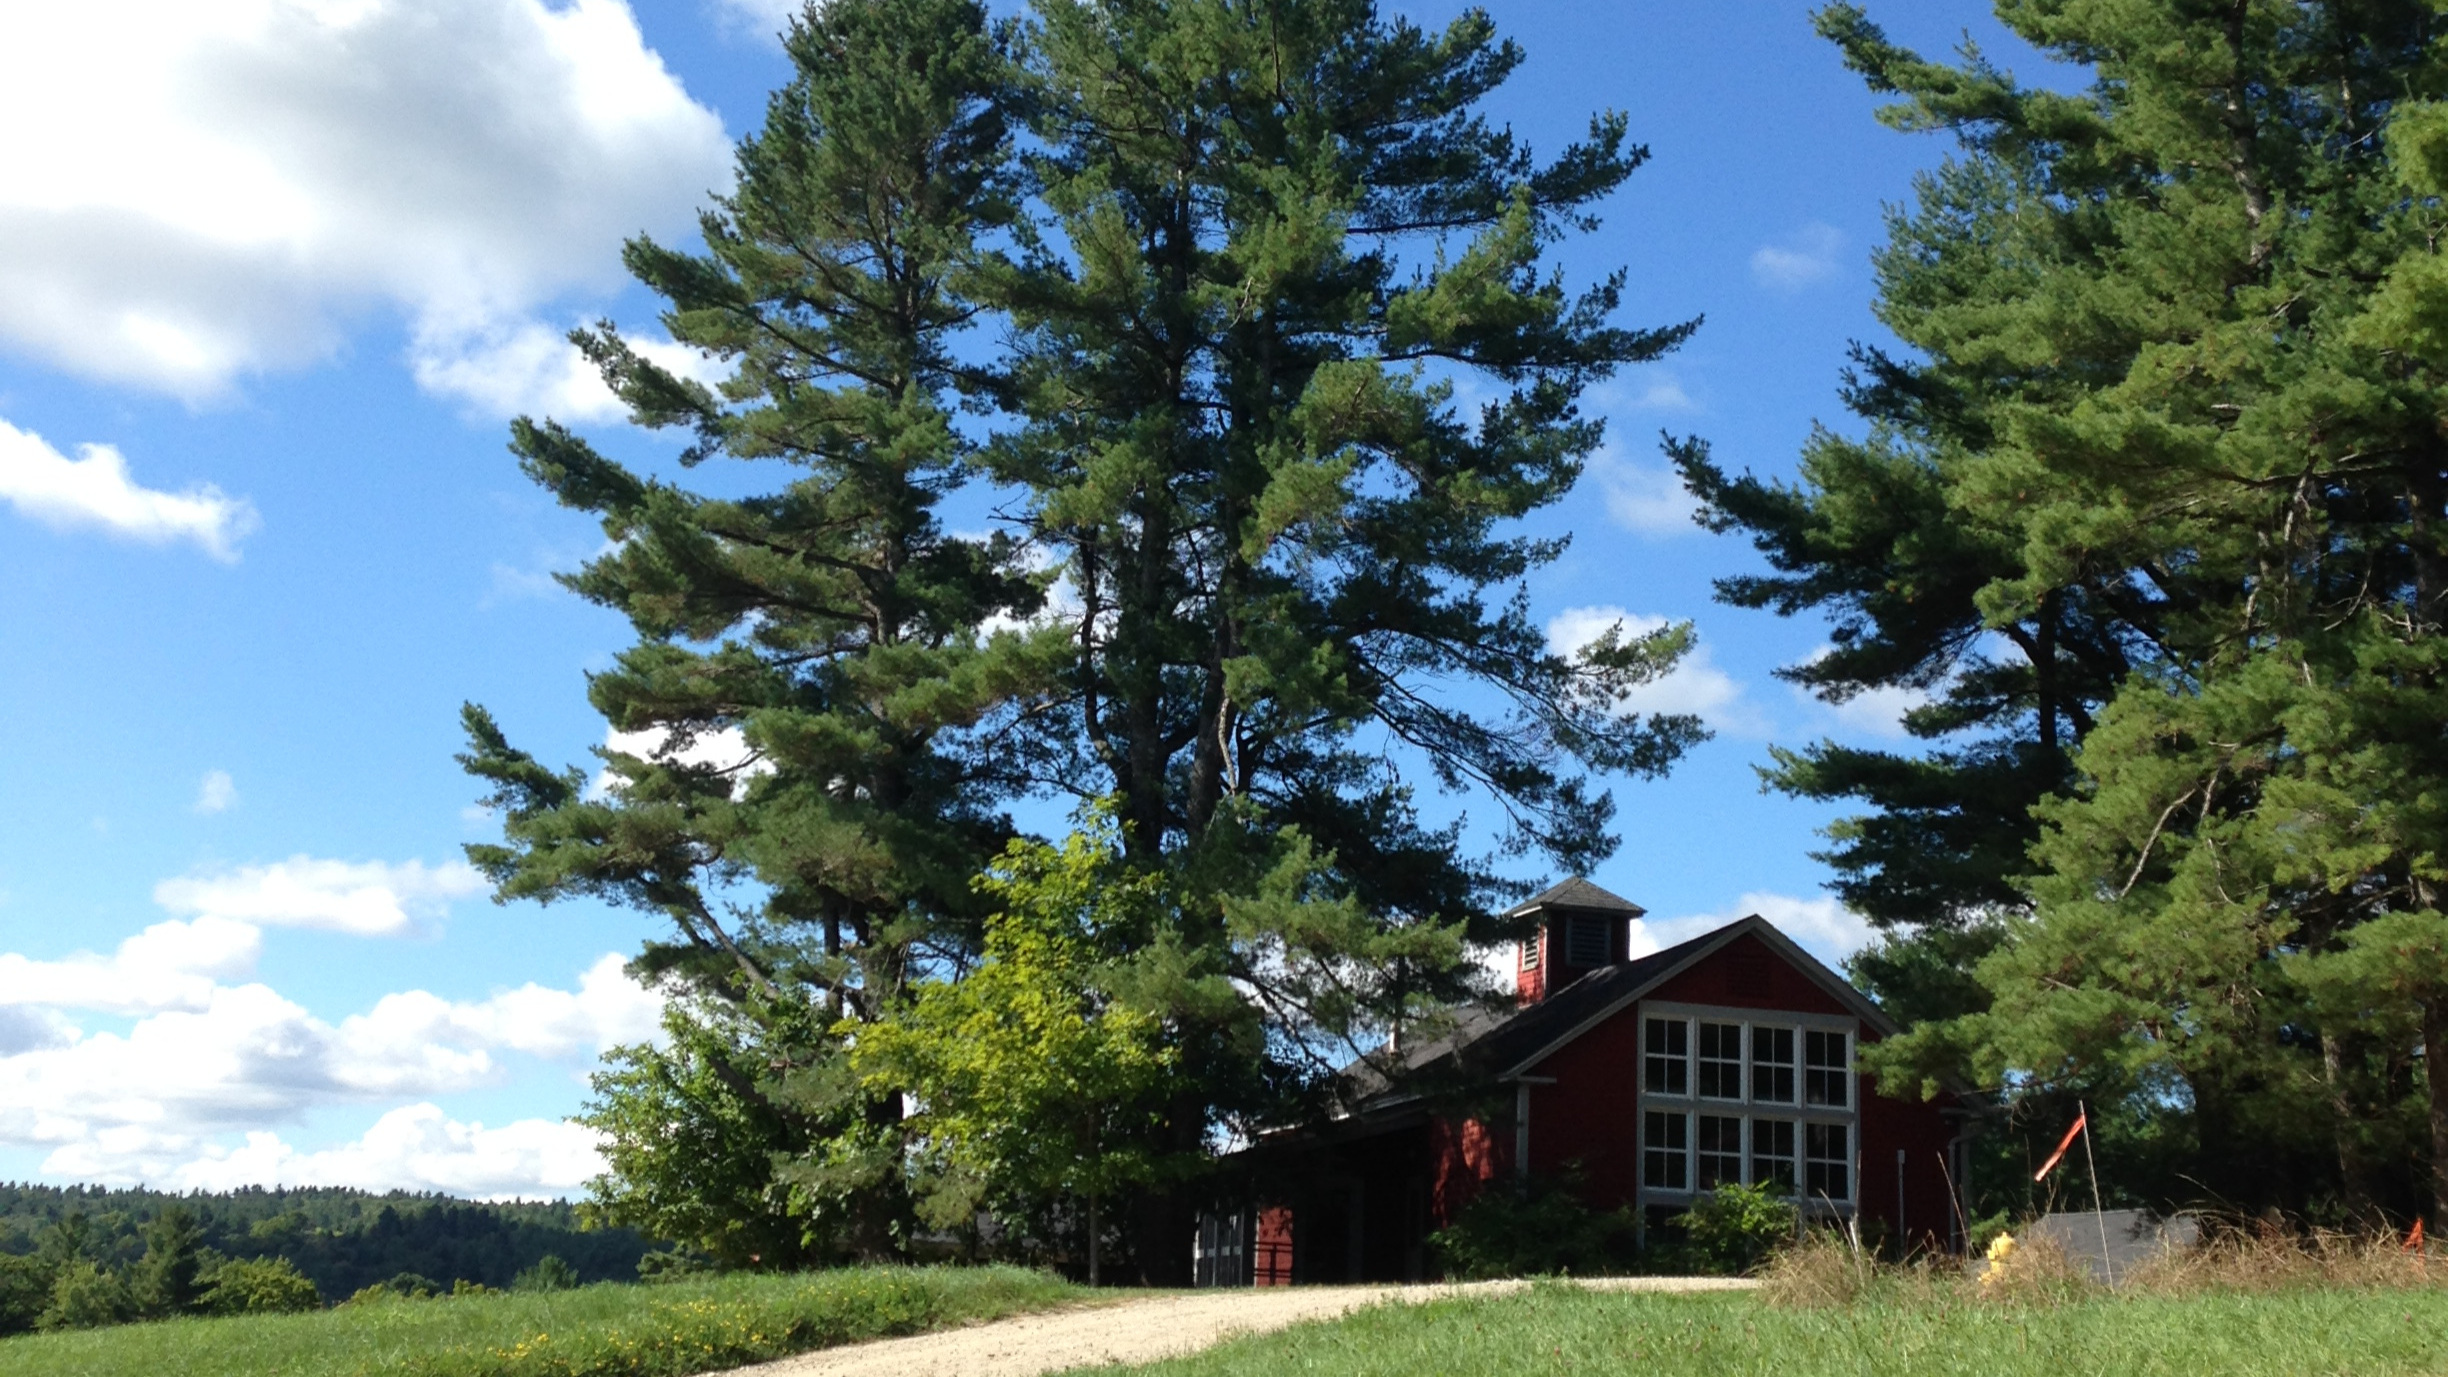 MacDowell Colony in the summer. (photo by Dan Millbauer)